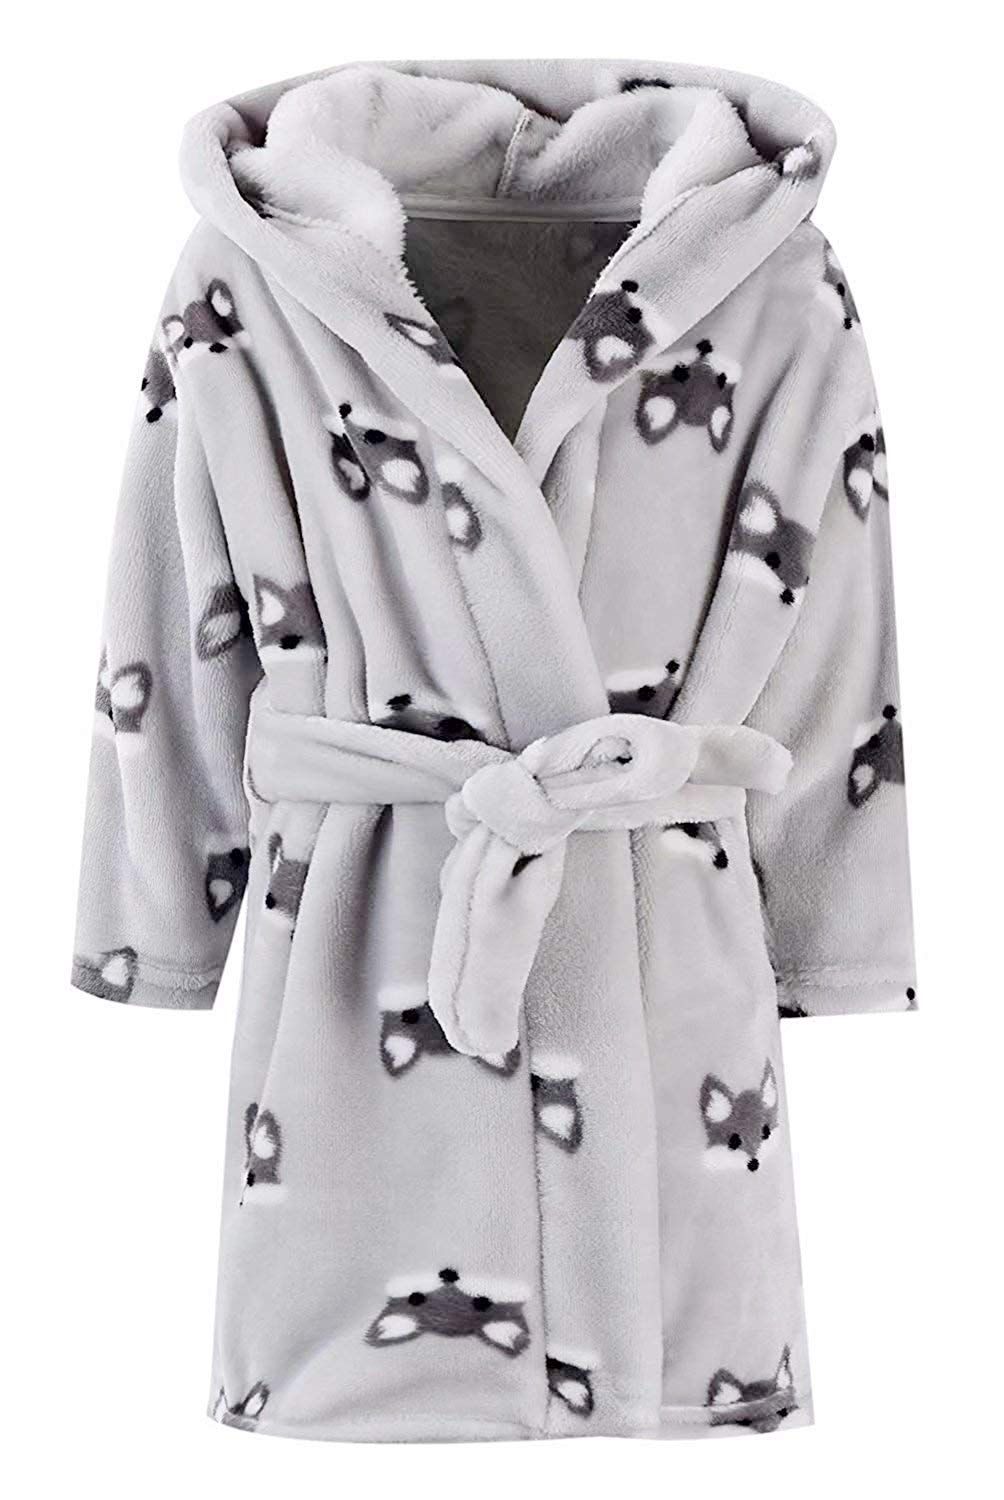 Image of Gray Fox Hooded Fleece Bathrobe for Boys and Toddlers - See More